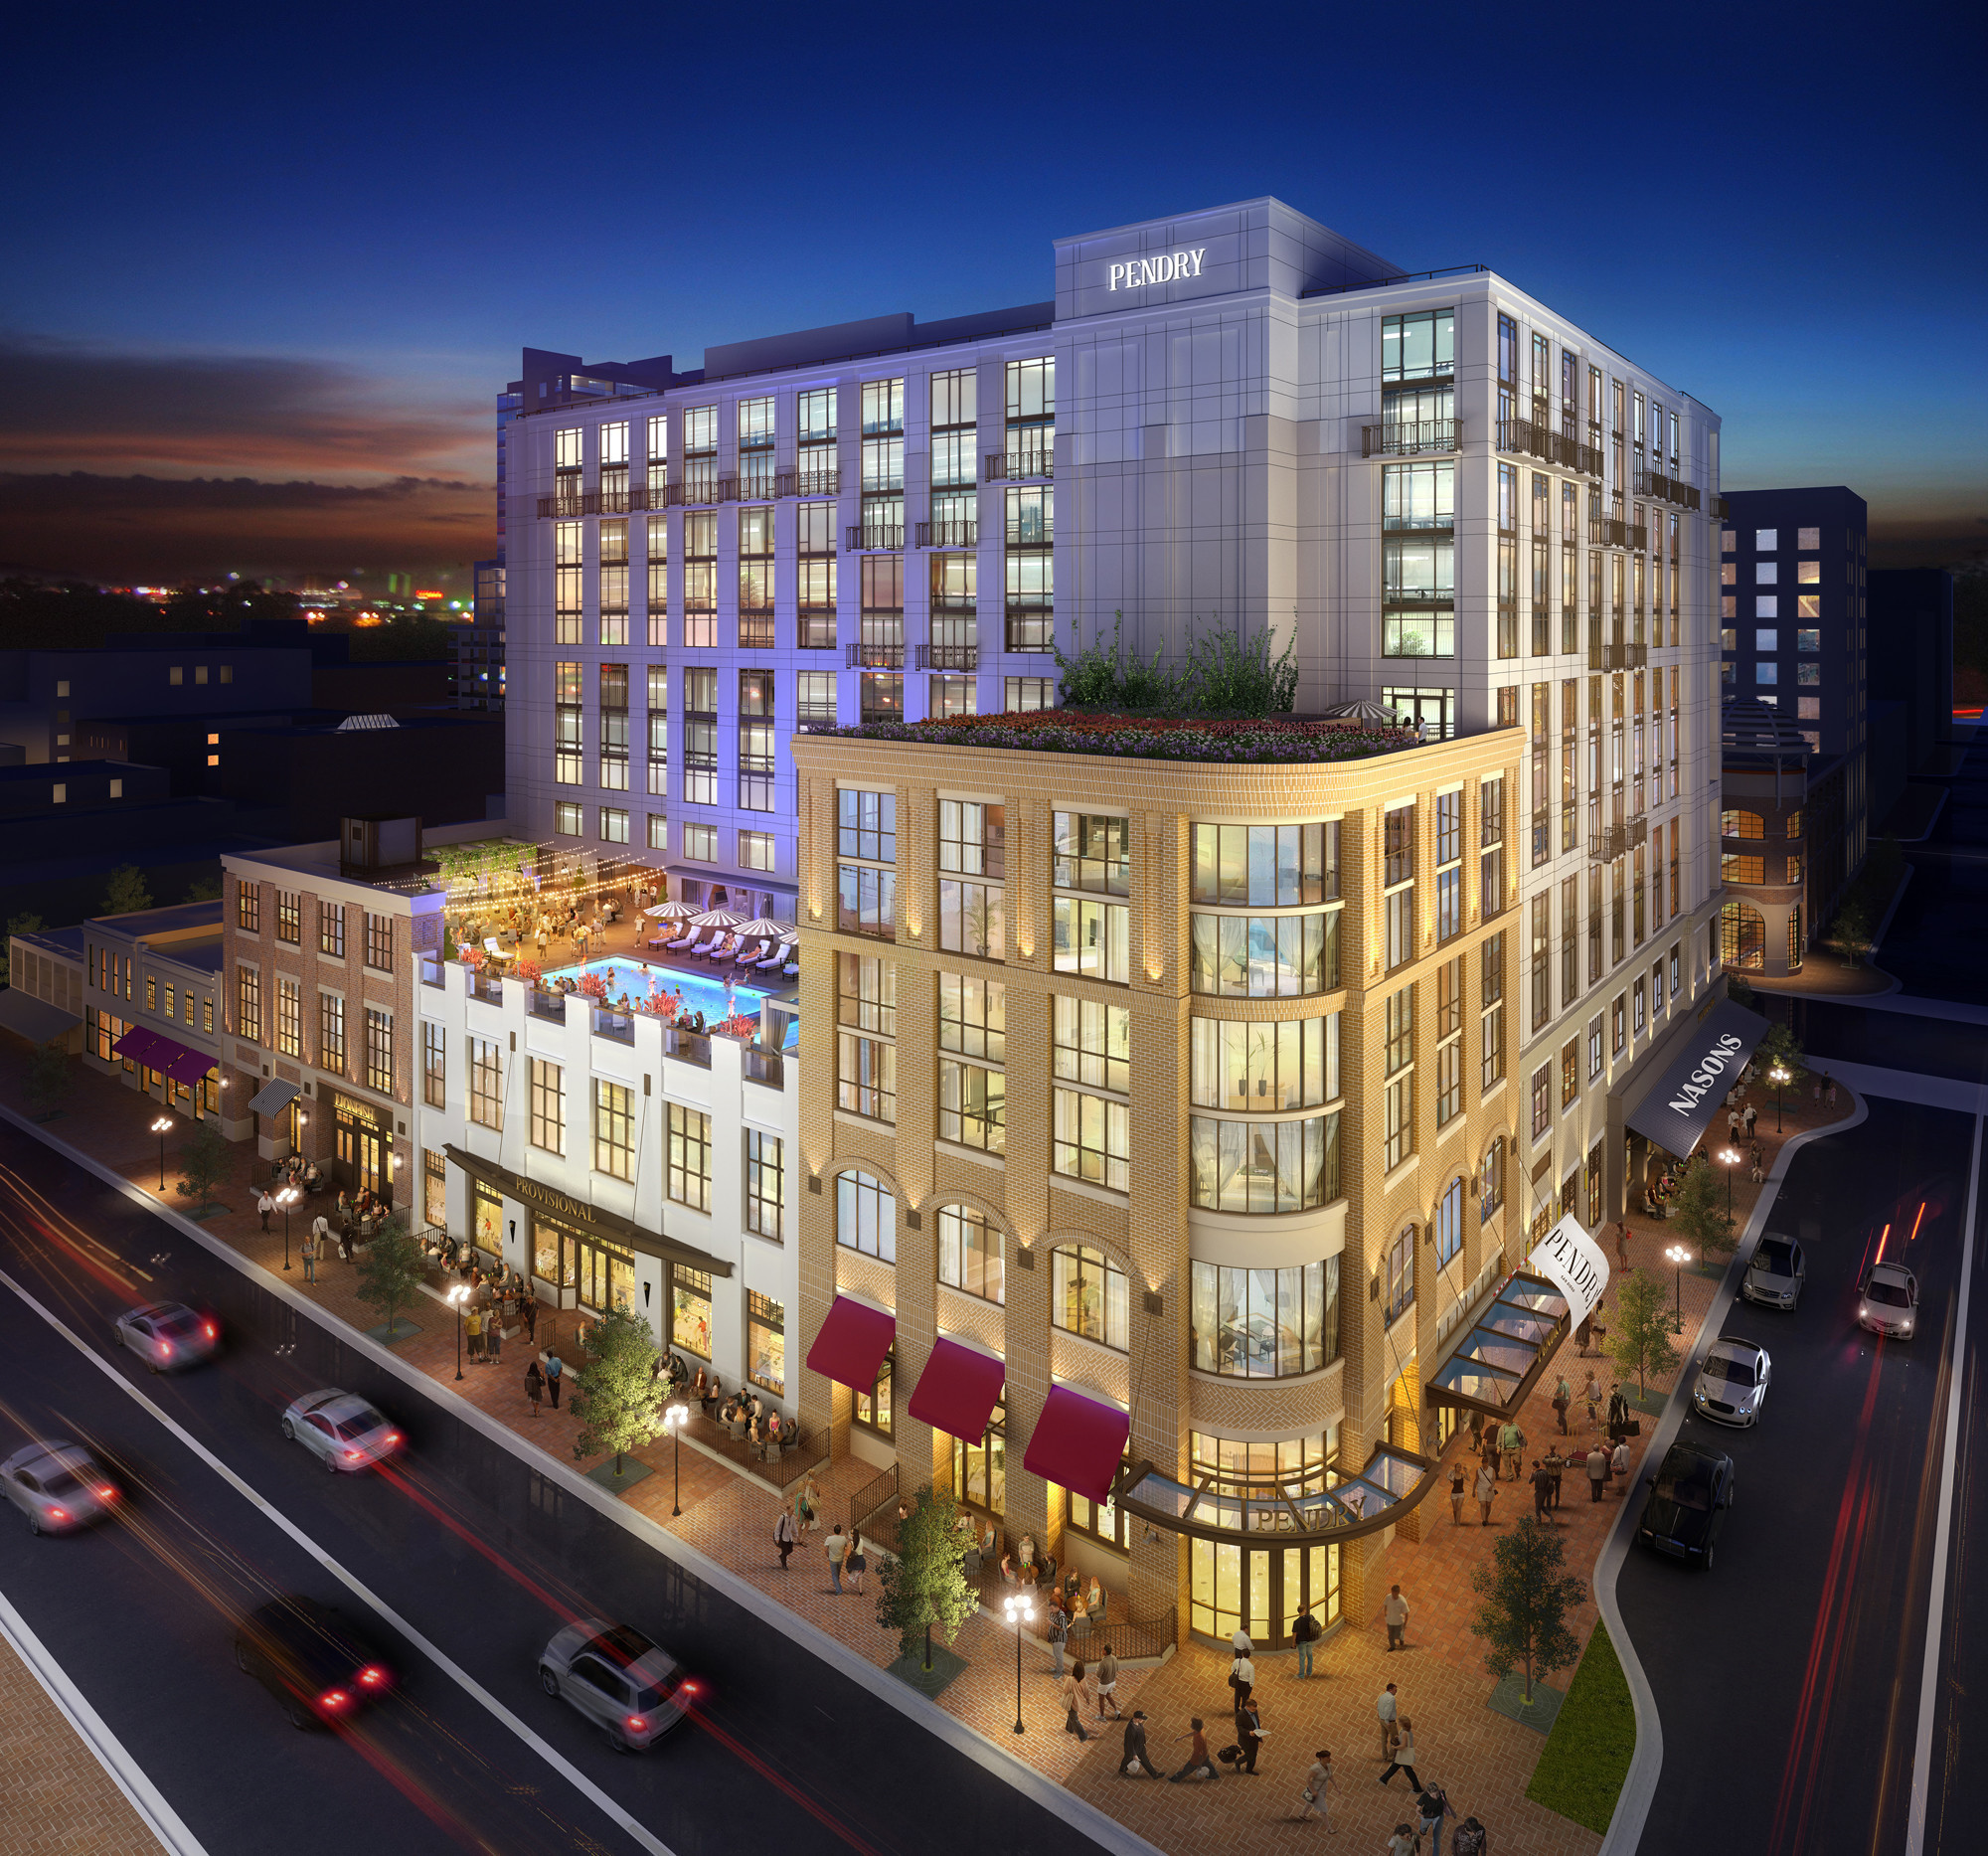 Hotel Building Boom Continues In Southern California The San Go Union Tribune